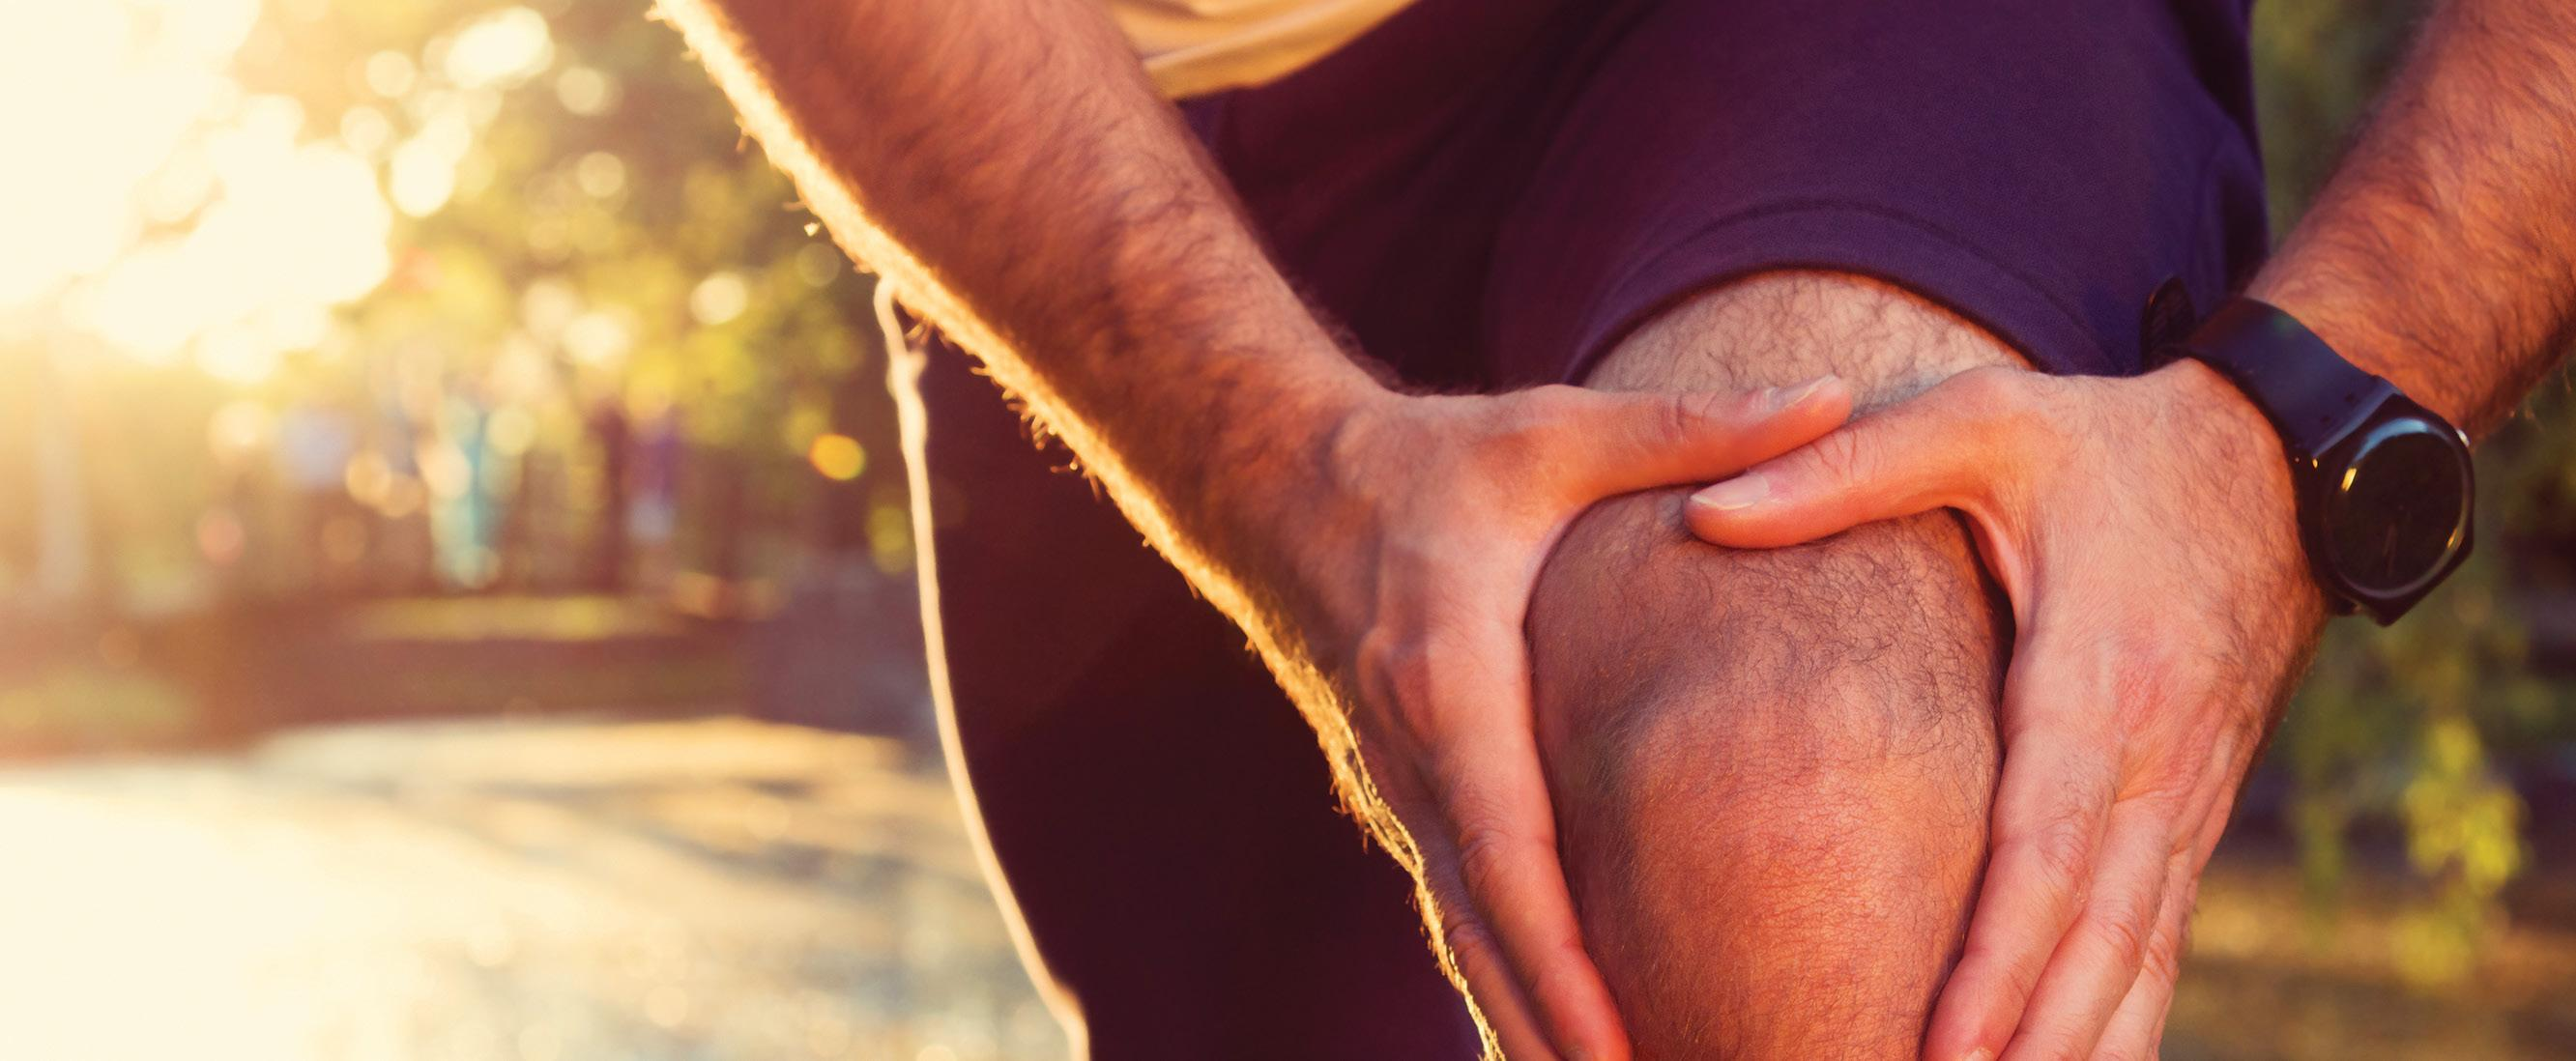 Page 32 of A Joint Effort – Image-Guided Steroid/Anesthetic Injections To Treat Chronic Joint Pain